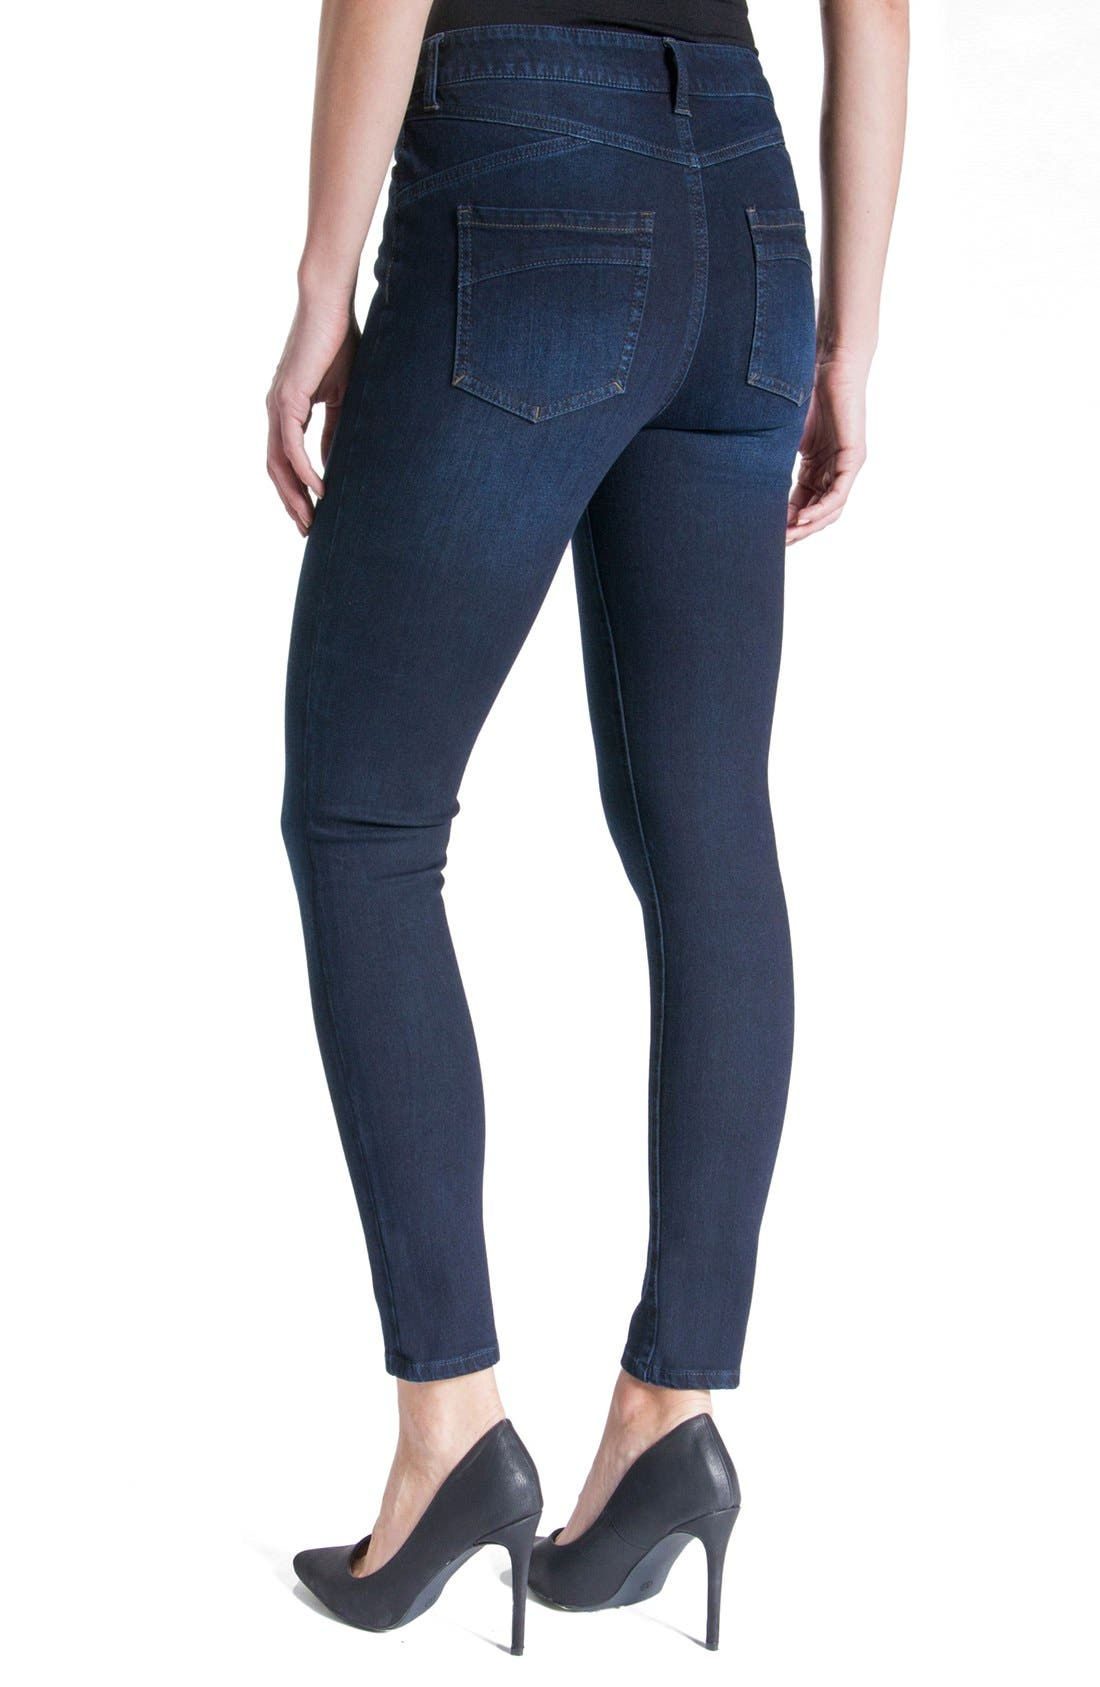 Jeans Company Piper Hugger Lift Sculpt Ankle Skinny Jeans,                             Alternate thumbnail 13, color,